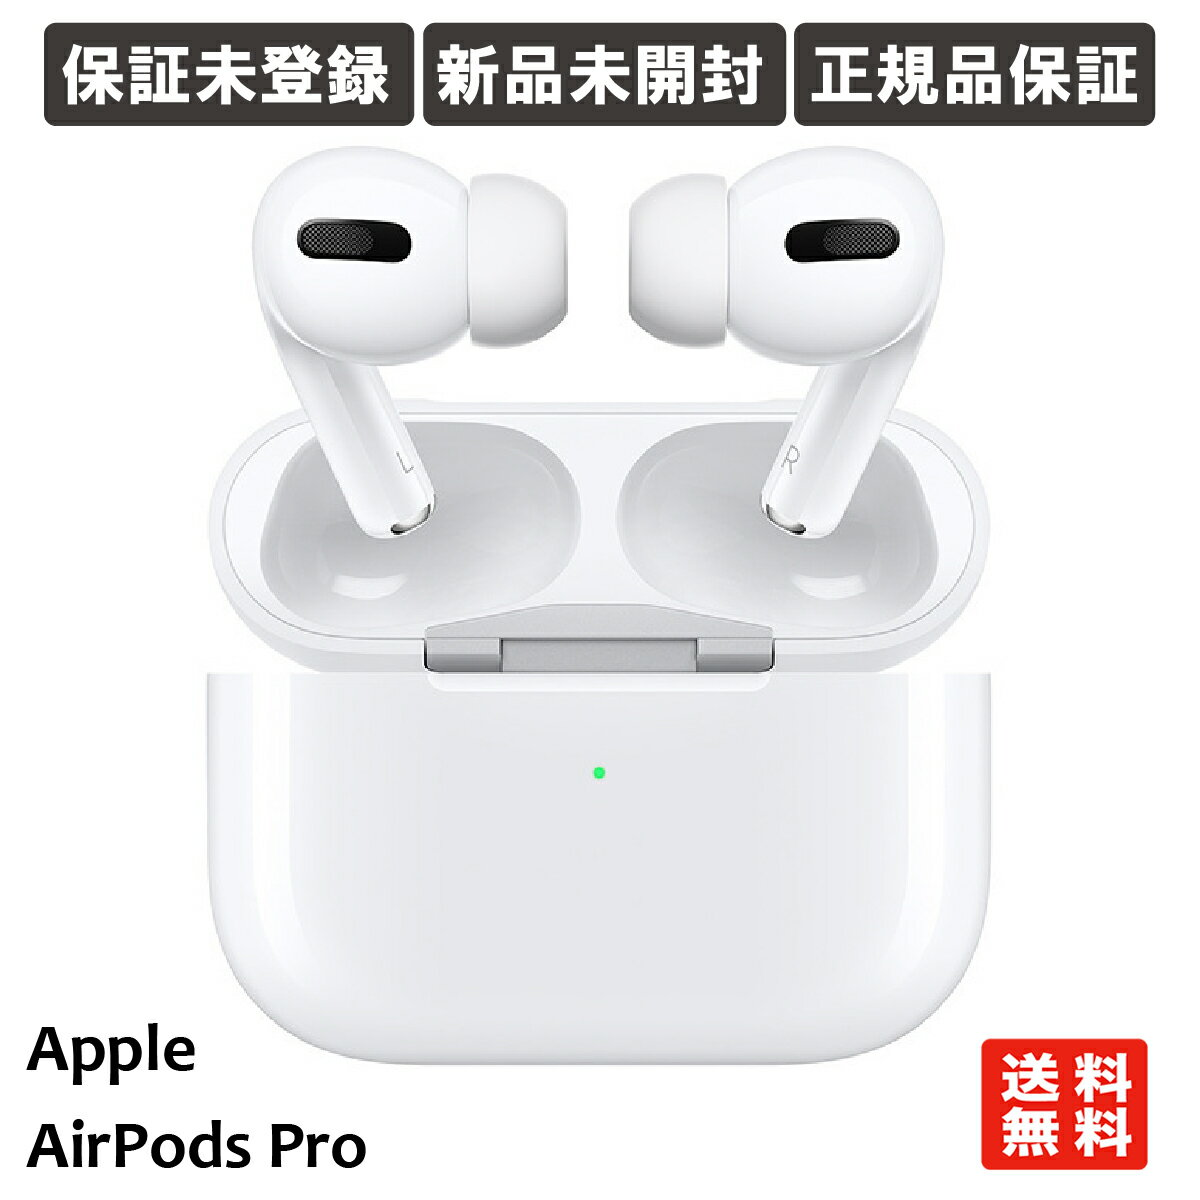 オーディオ, ヘッドホン・イヤホン Apple AirPods Pro MWP22ZPA MWP22ZAA MWP22AMA MWP22RUA Air pods